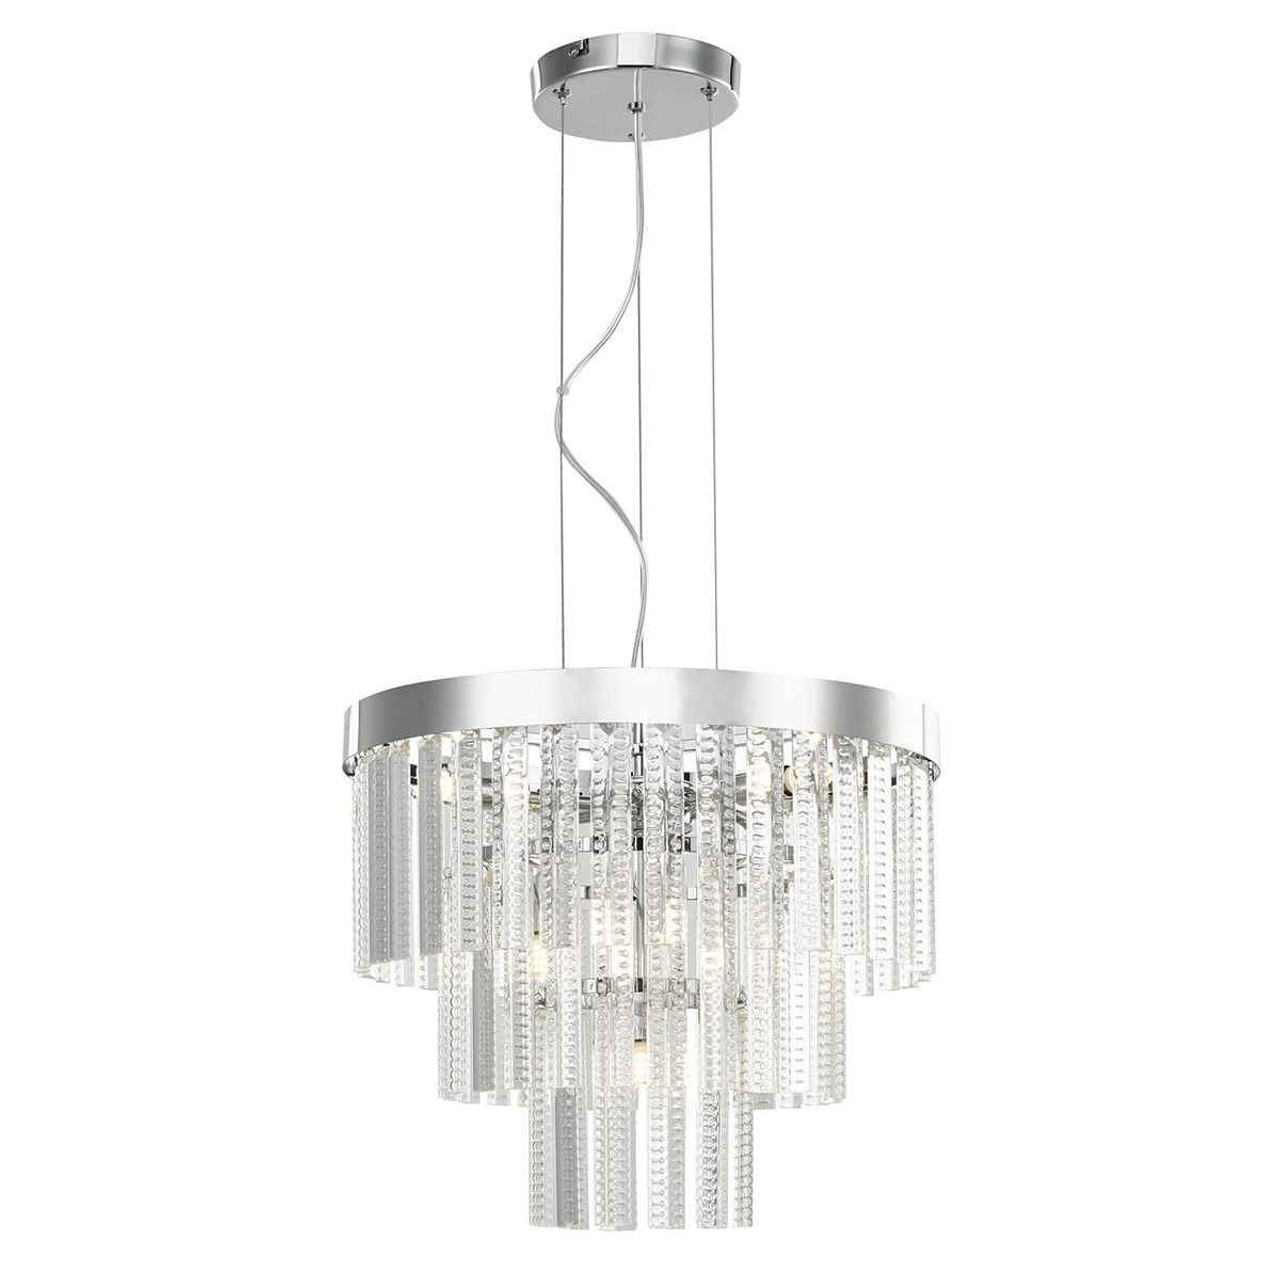 Lorant 7 Light 3 Tier Clear Polished Chrome Pendant Light